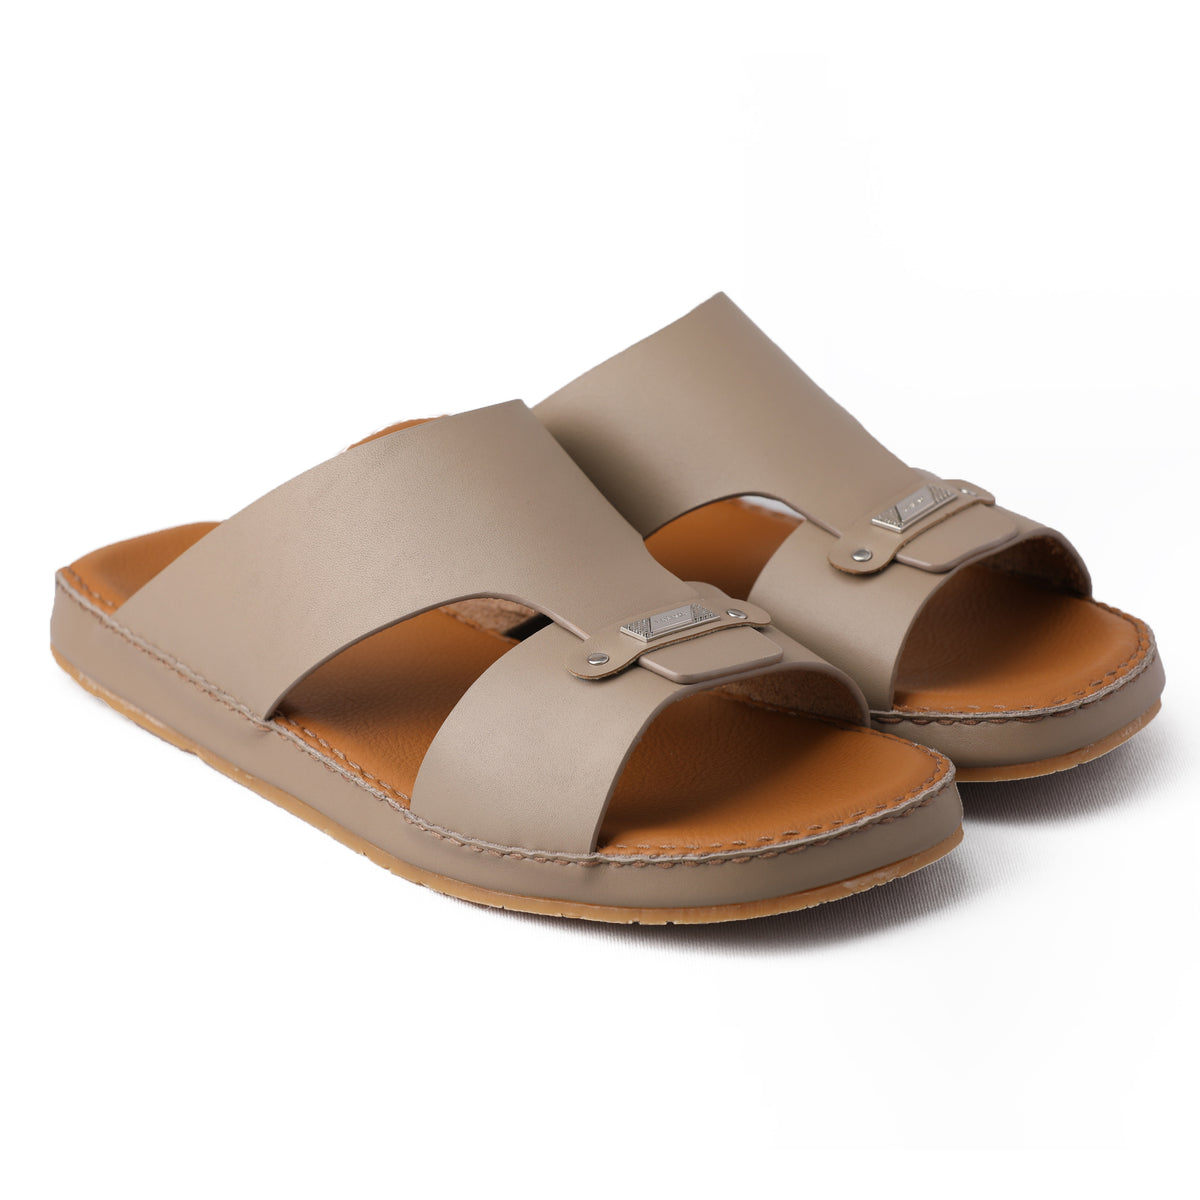 NOVO CALF VIZON FLAT SOLE ARABIC SANDAL (9405-11)